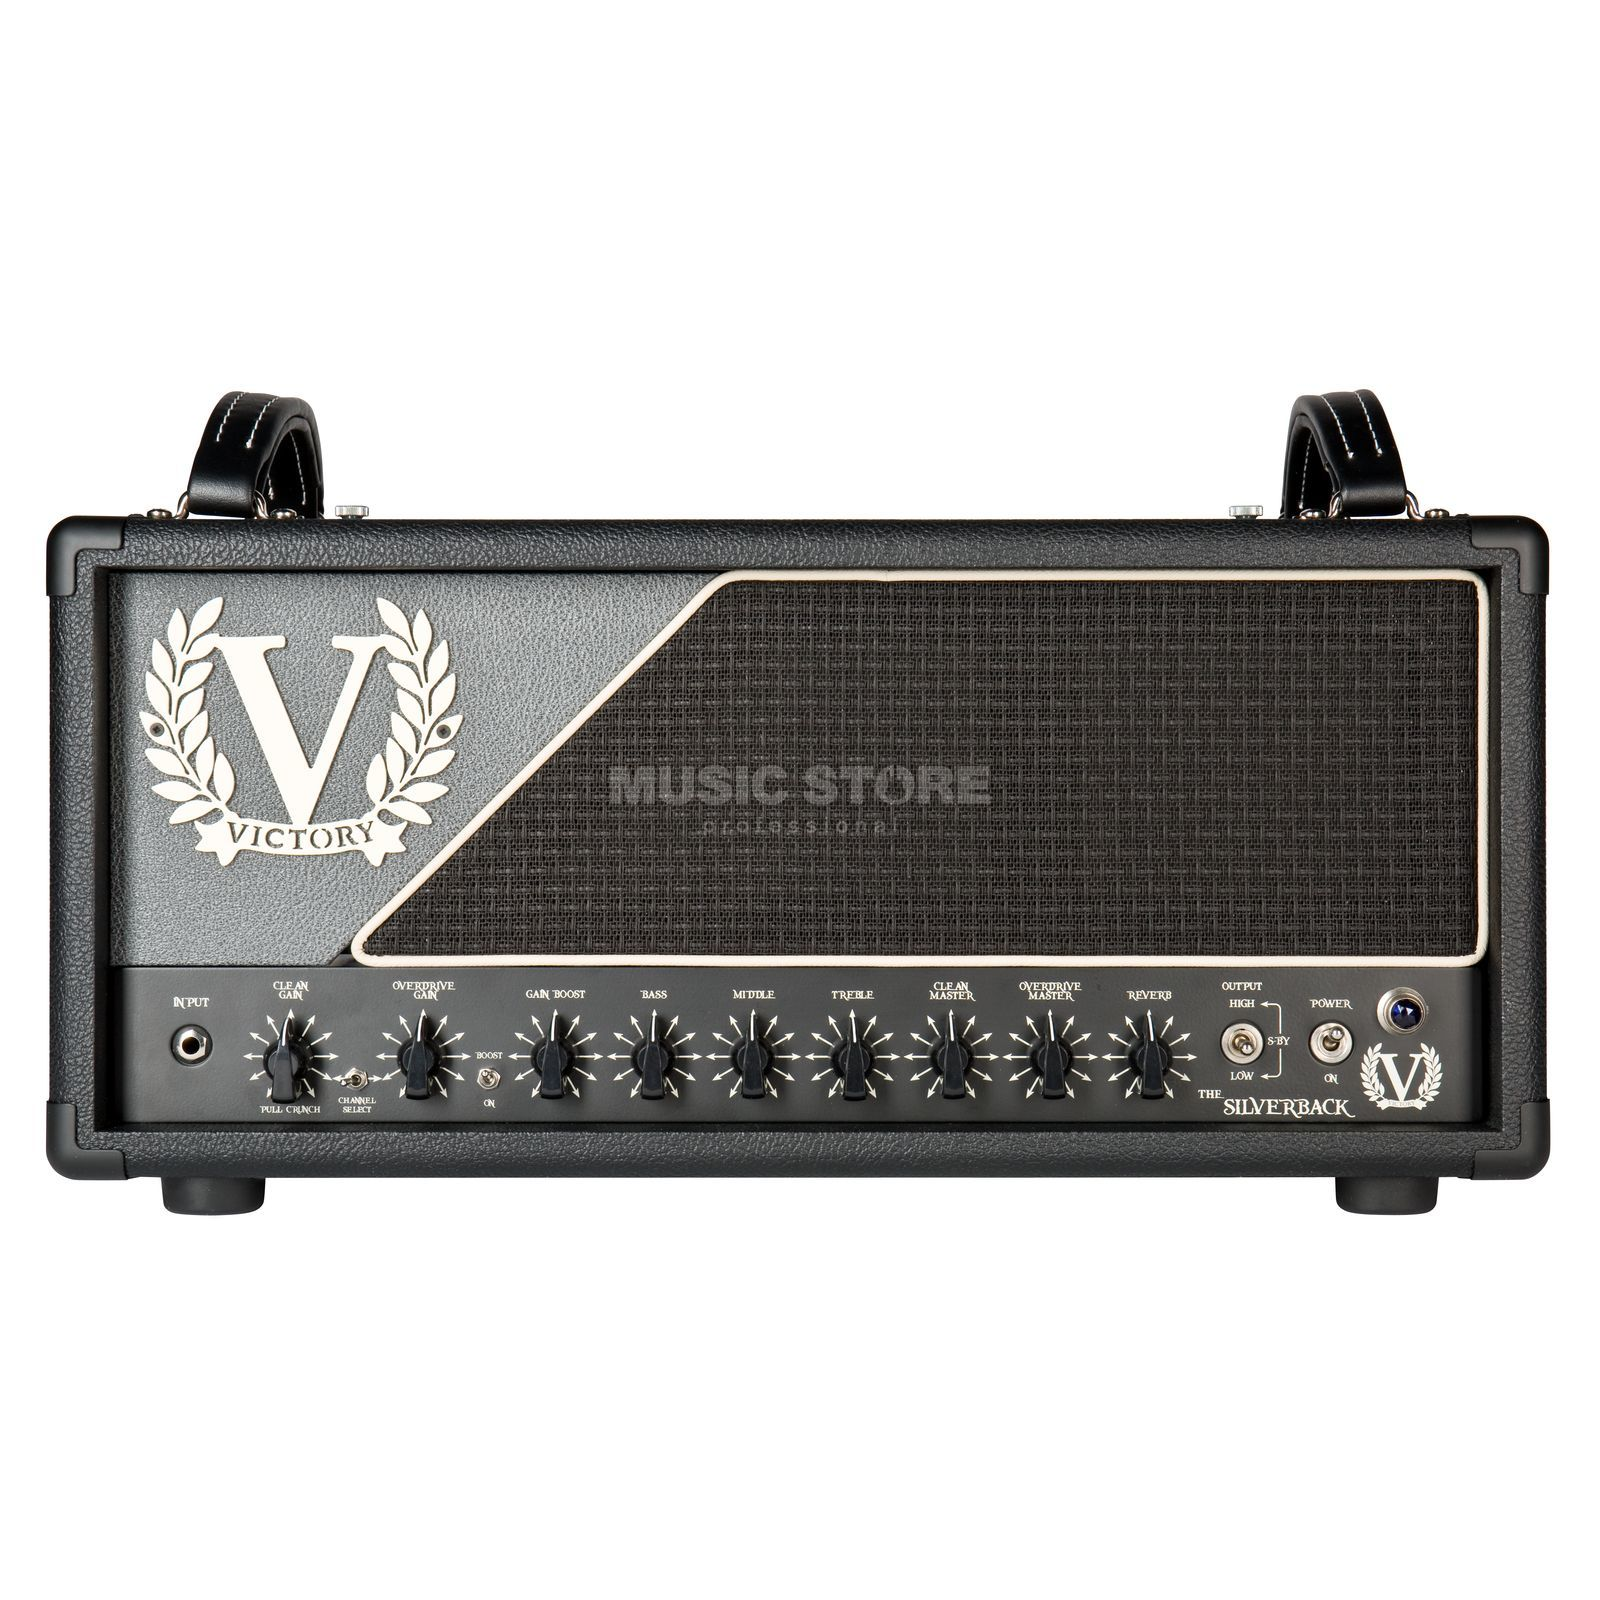 Victory Amplifiers Silverback Rob Chapman Signature Head Product Image